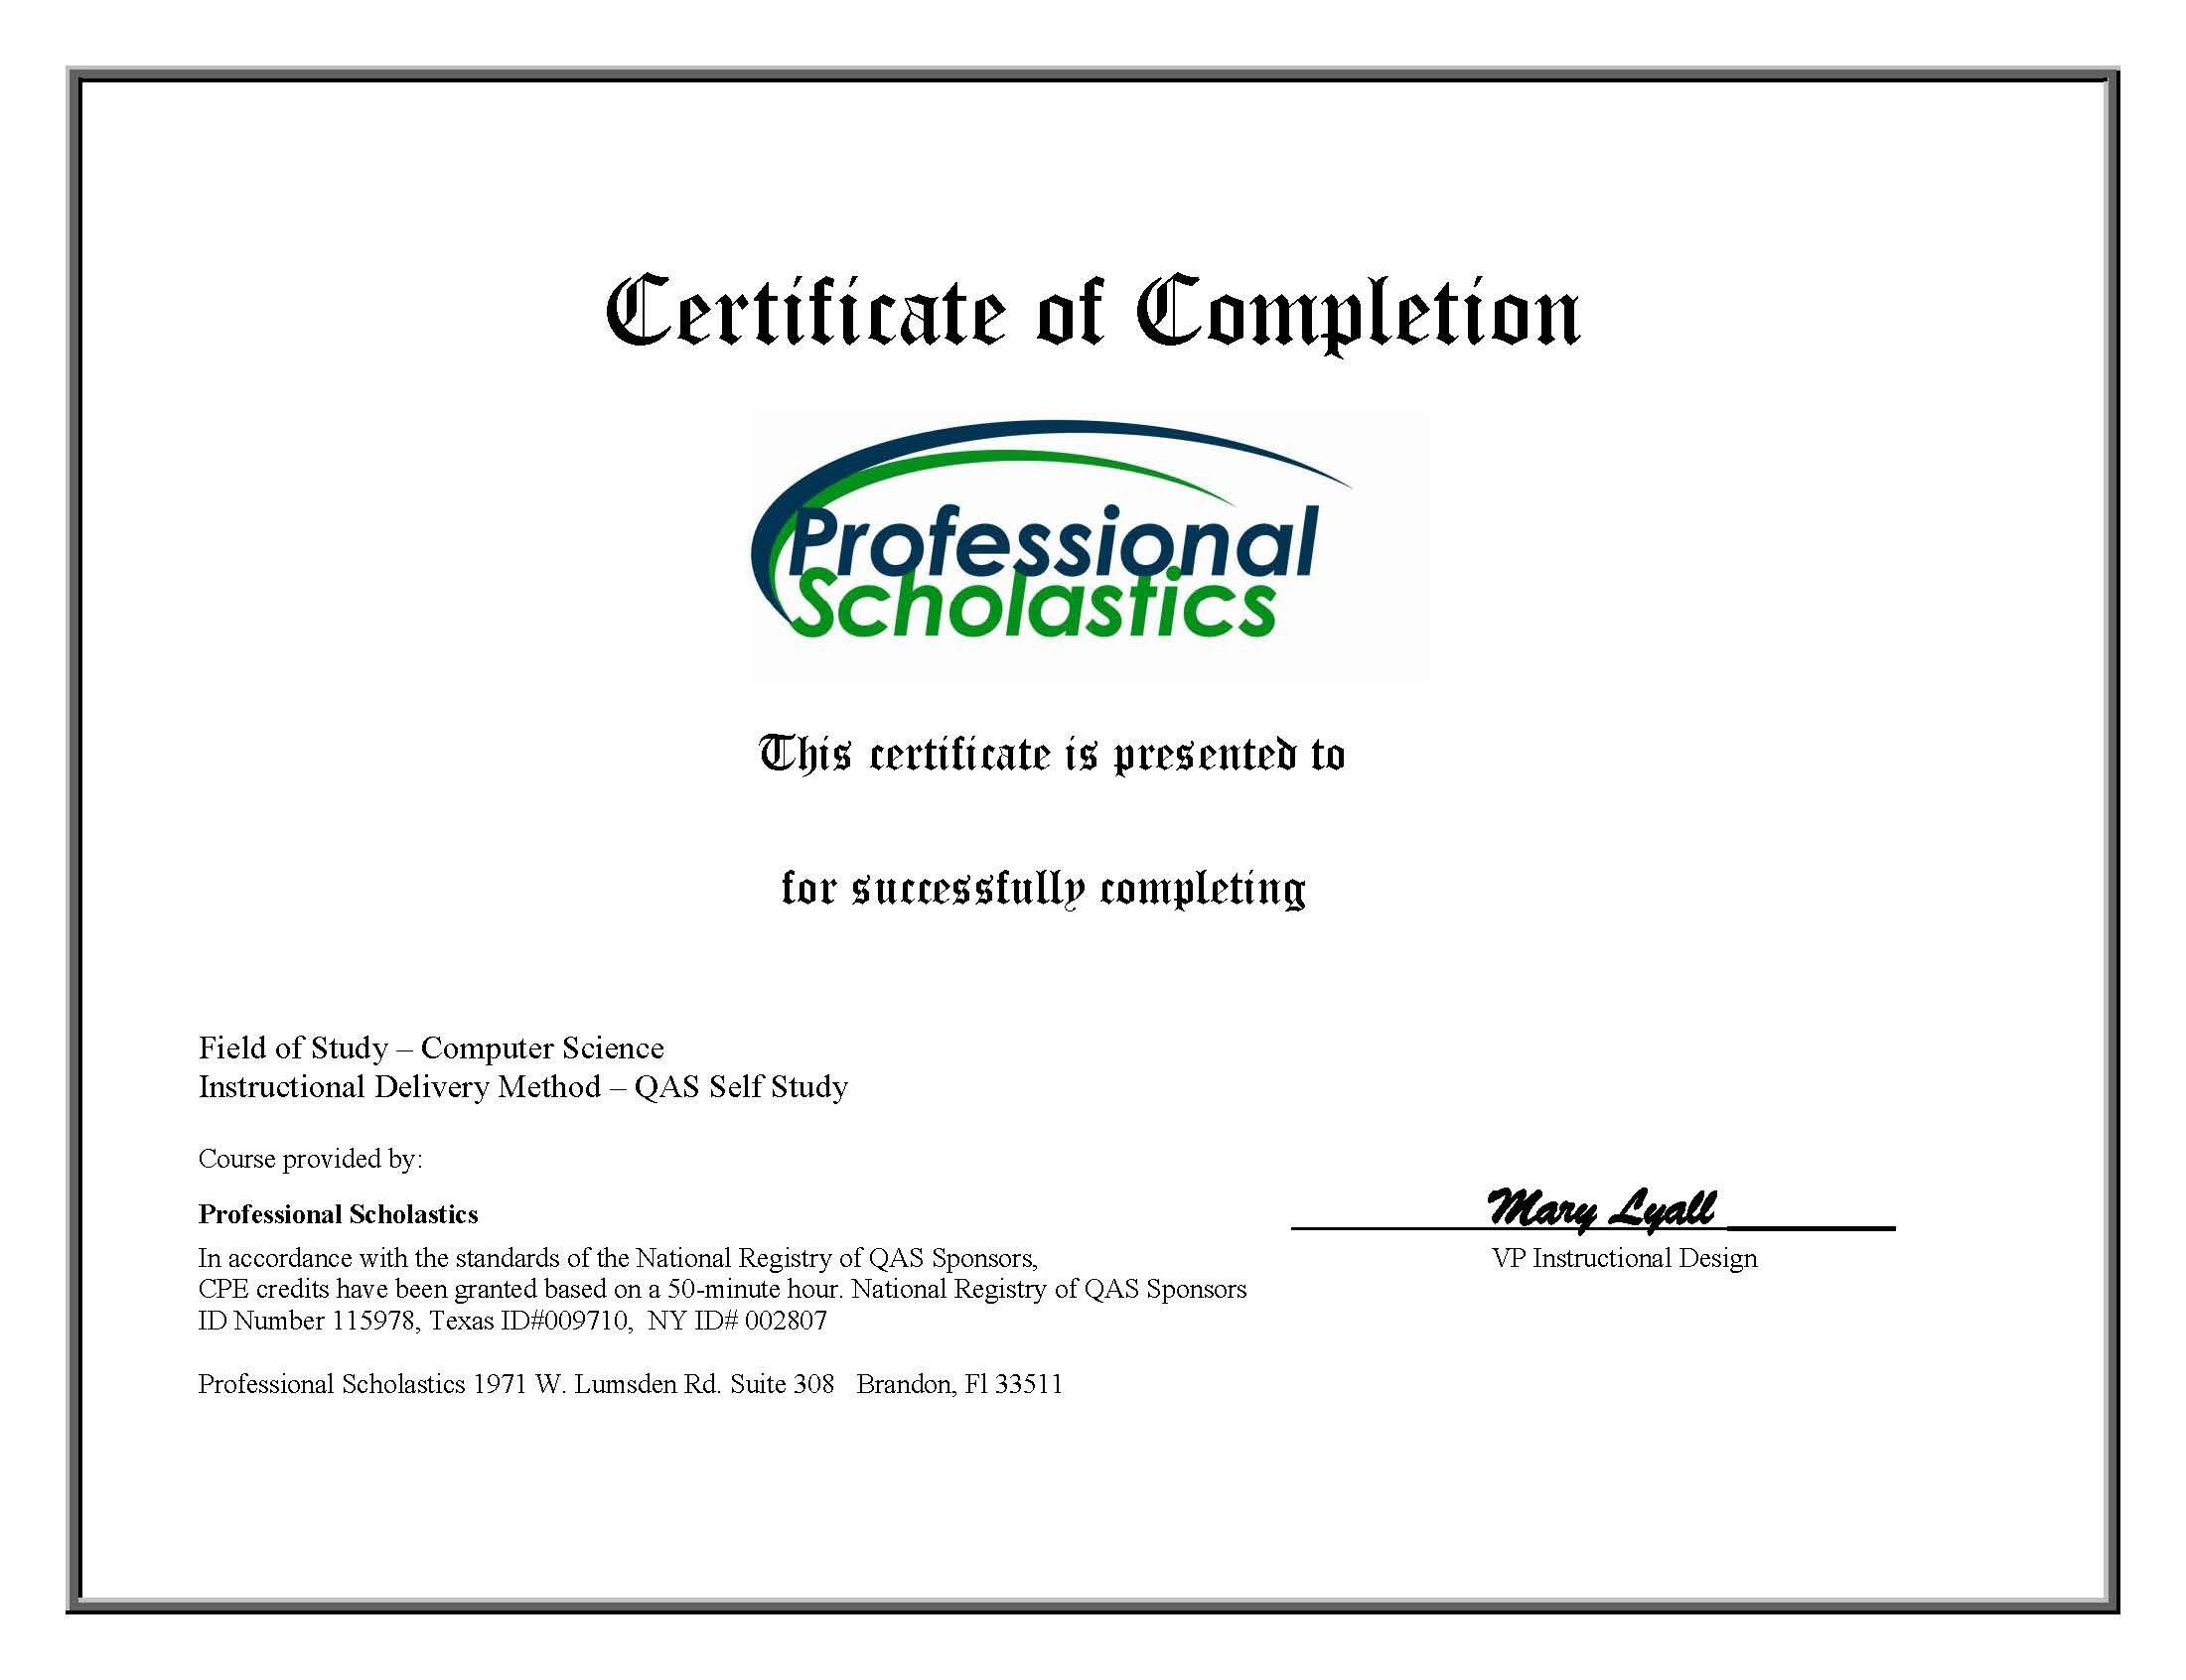 Whmis certificate template image collections templates example certificate template registry images certificate design and template certificate template registry choice image certificate design certificate xflitez Images